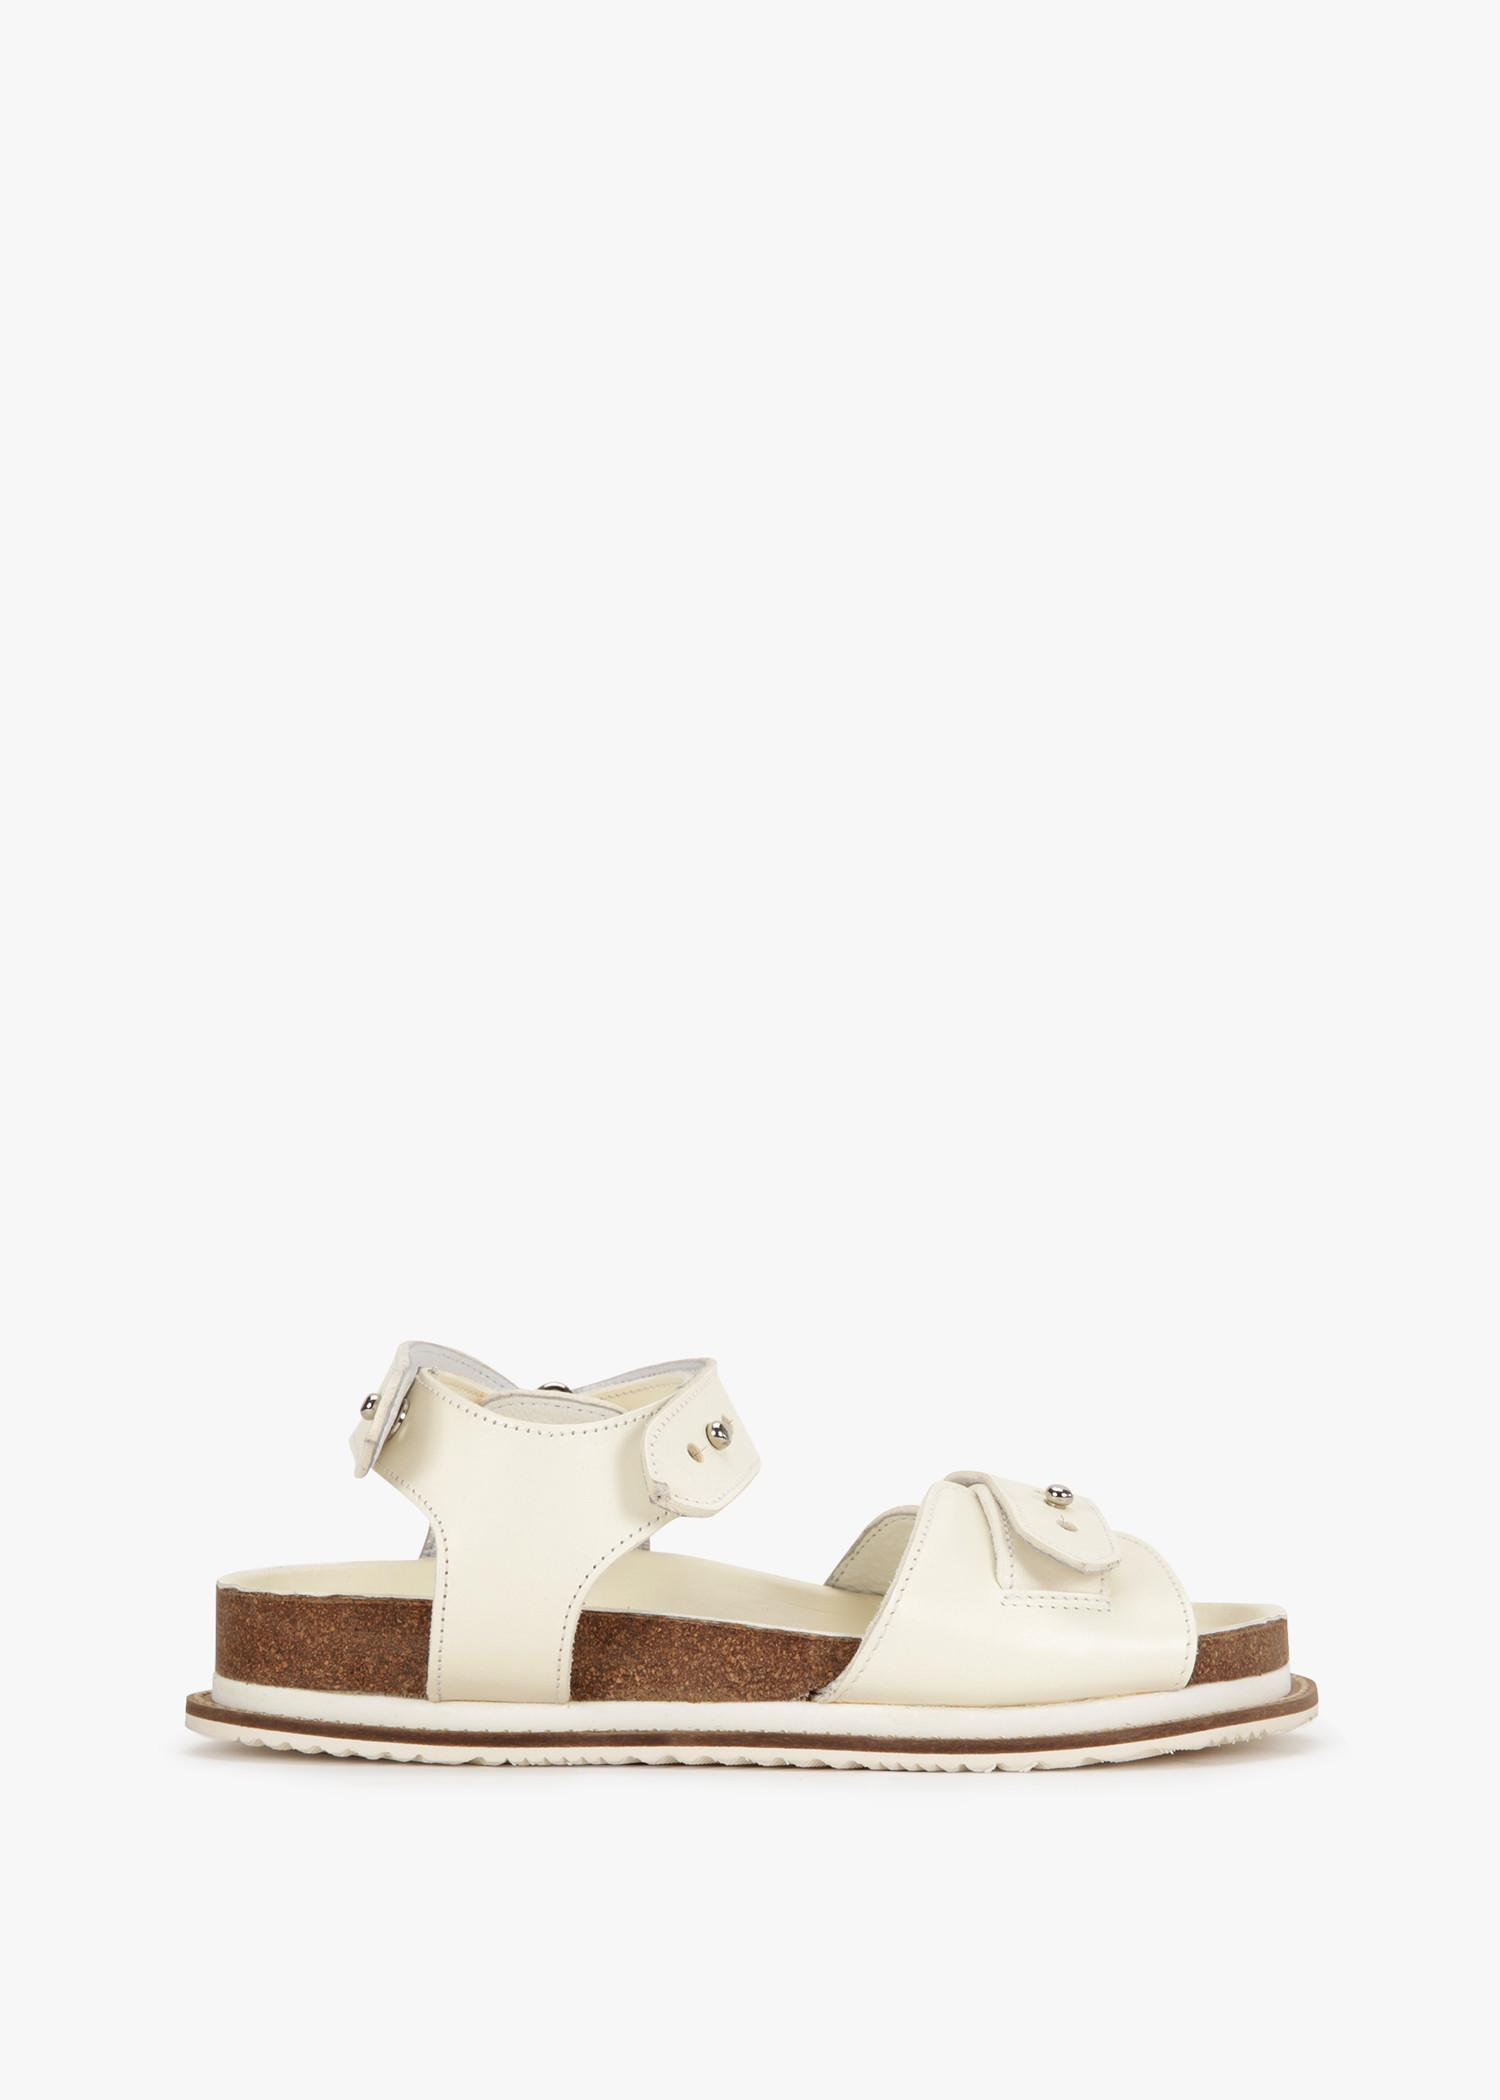 Y's Belt Sandal In White